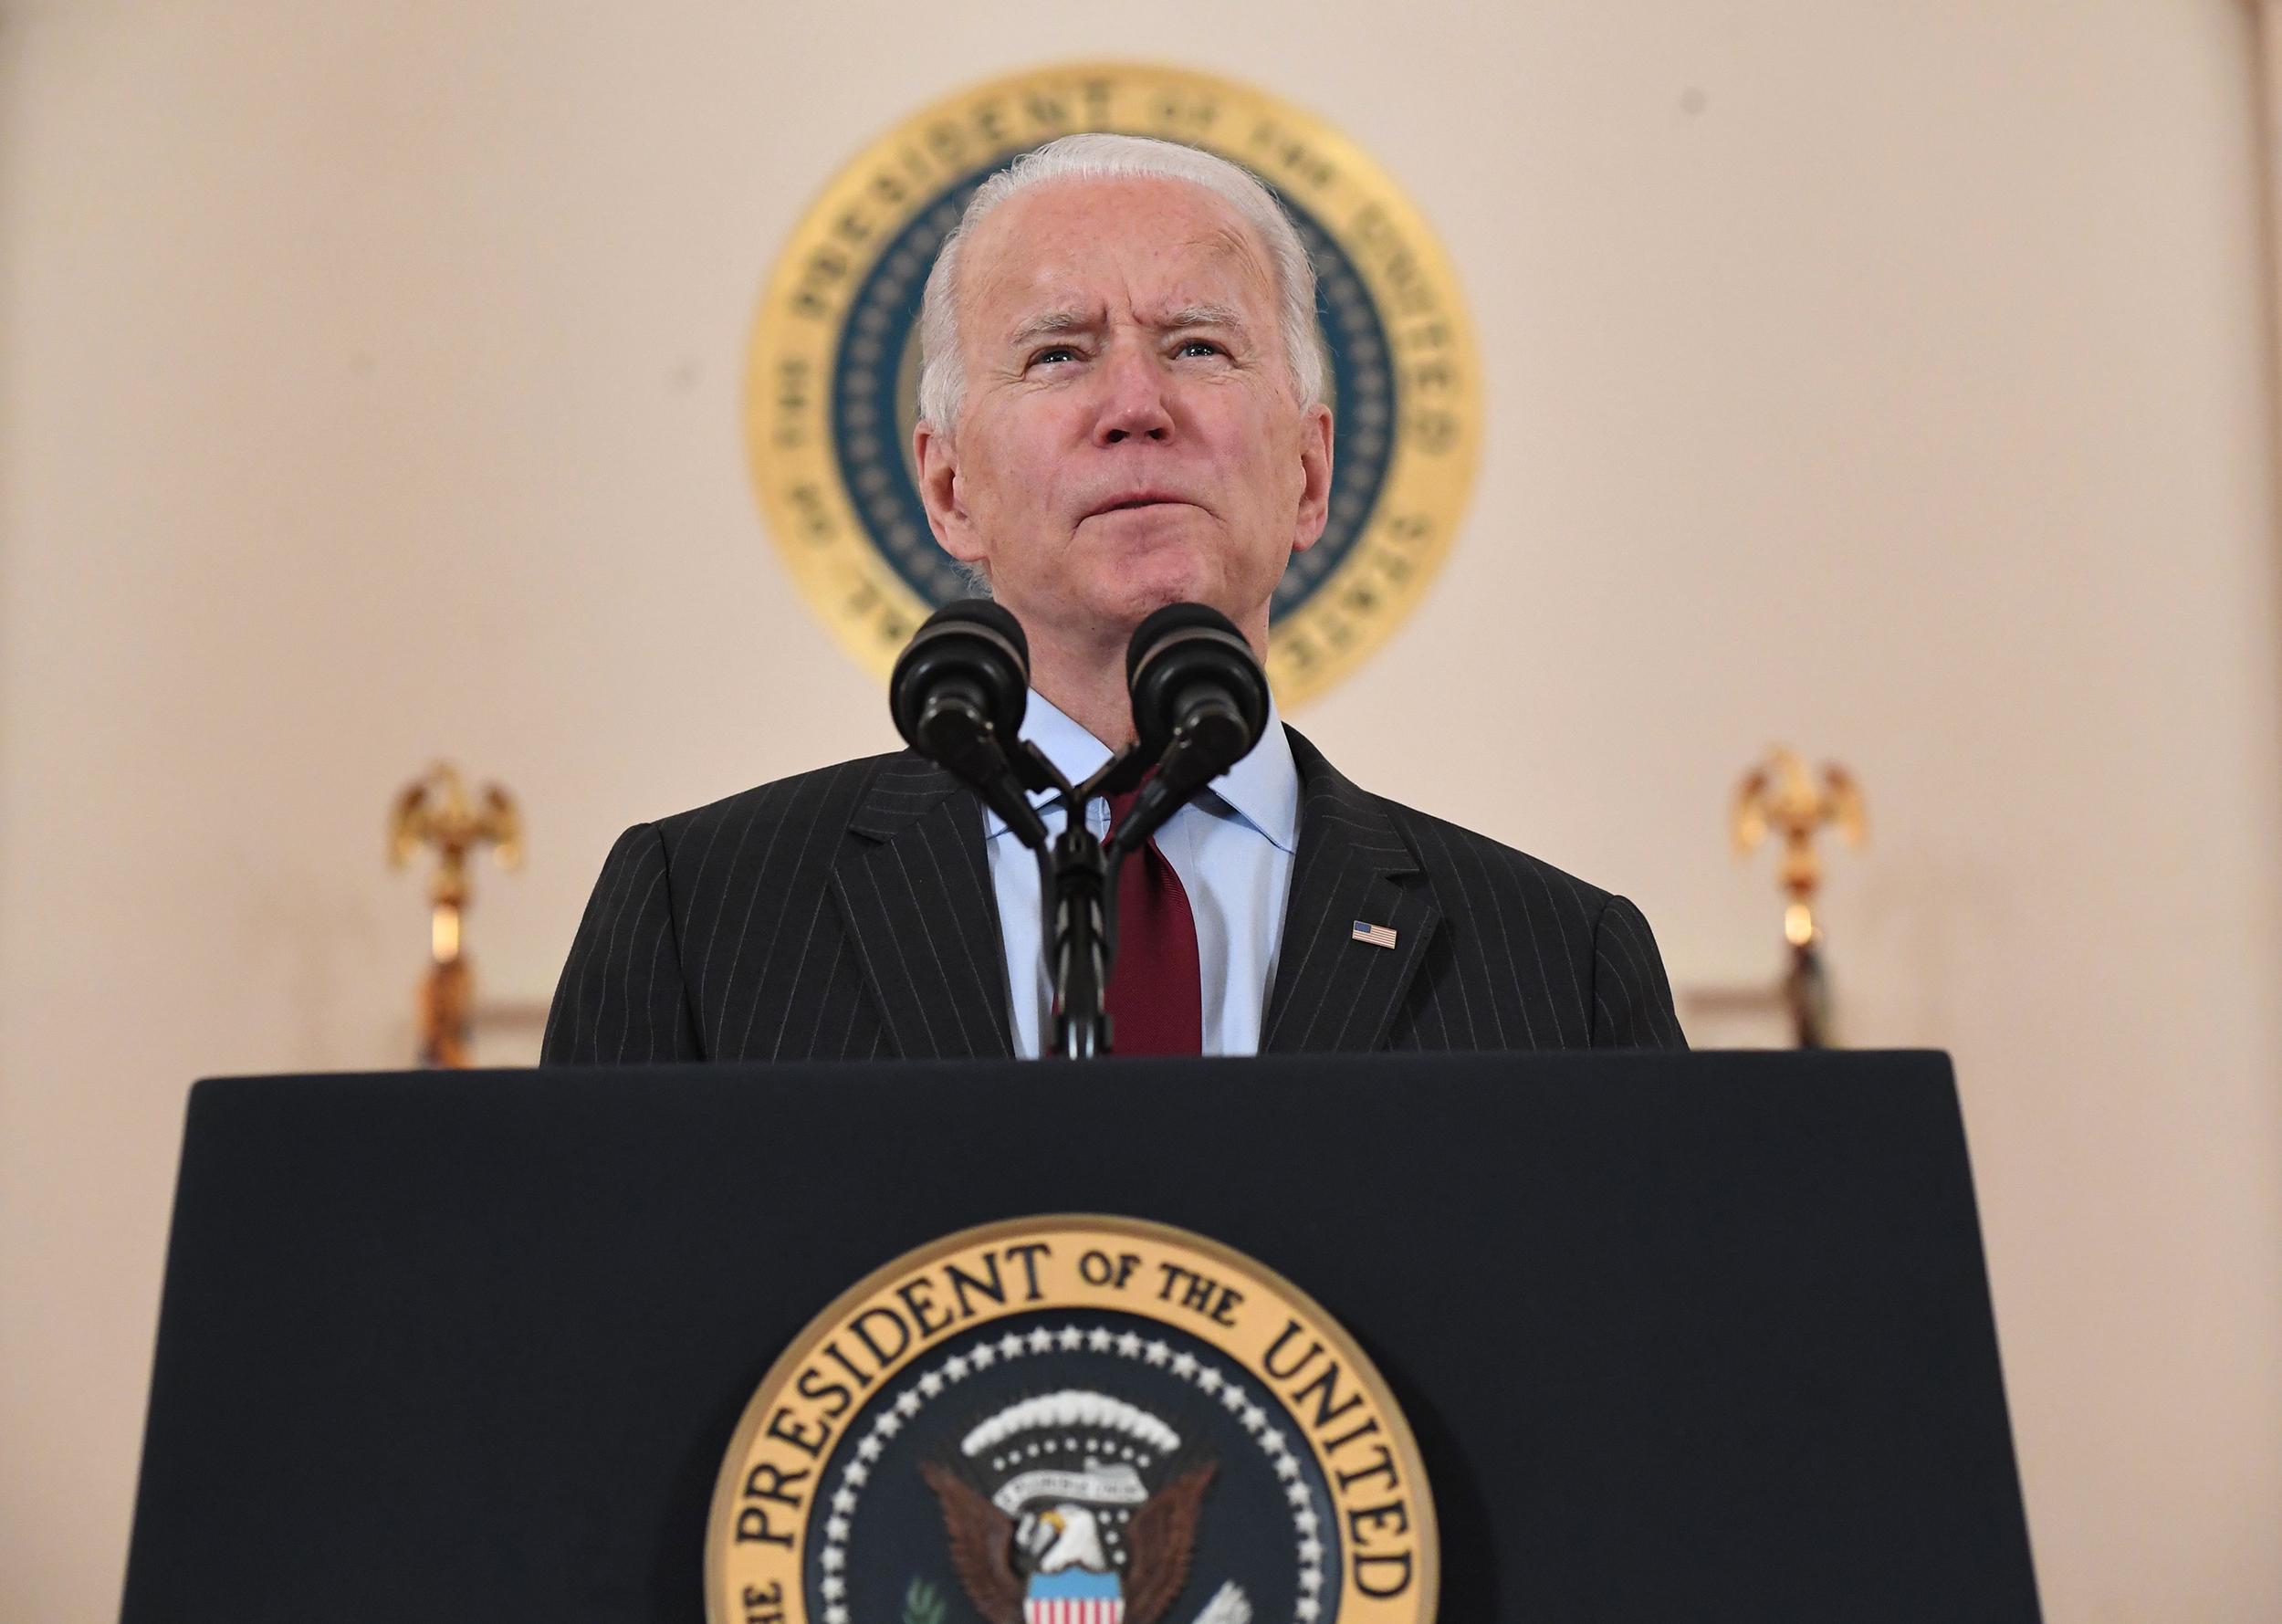 Biden administration to send 25 million masks to community health centers and food pantries